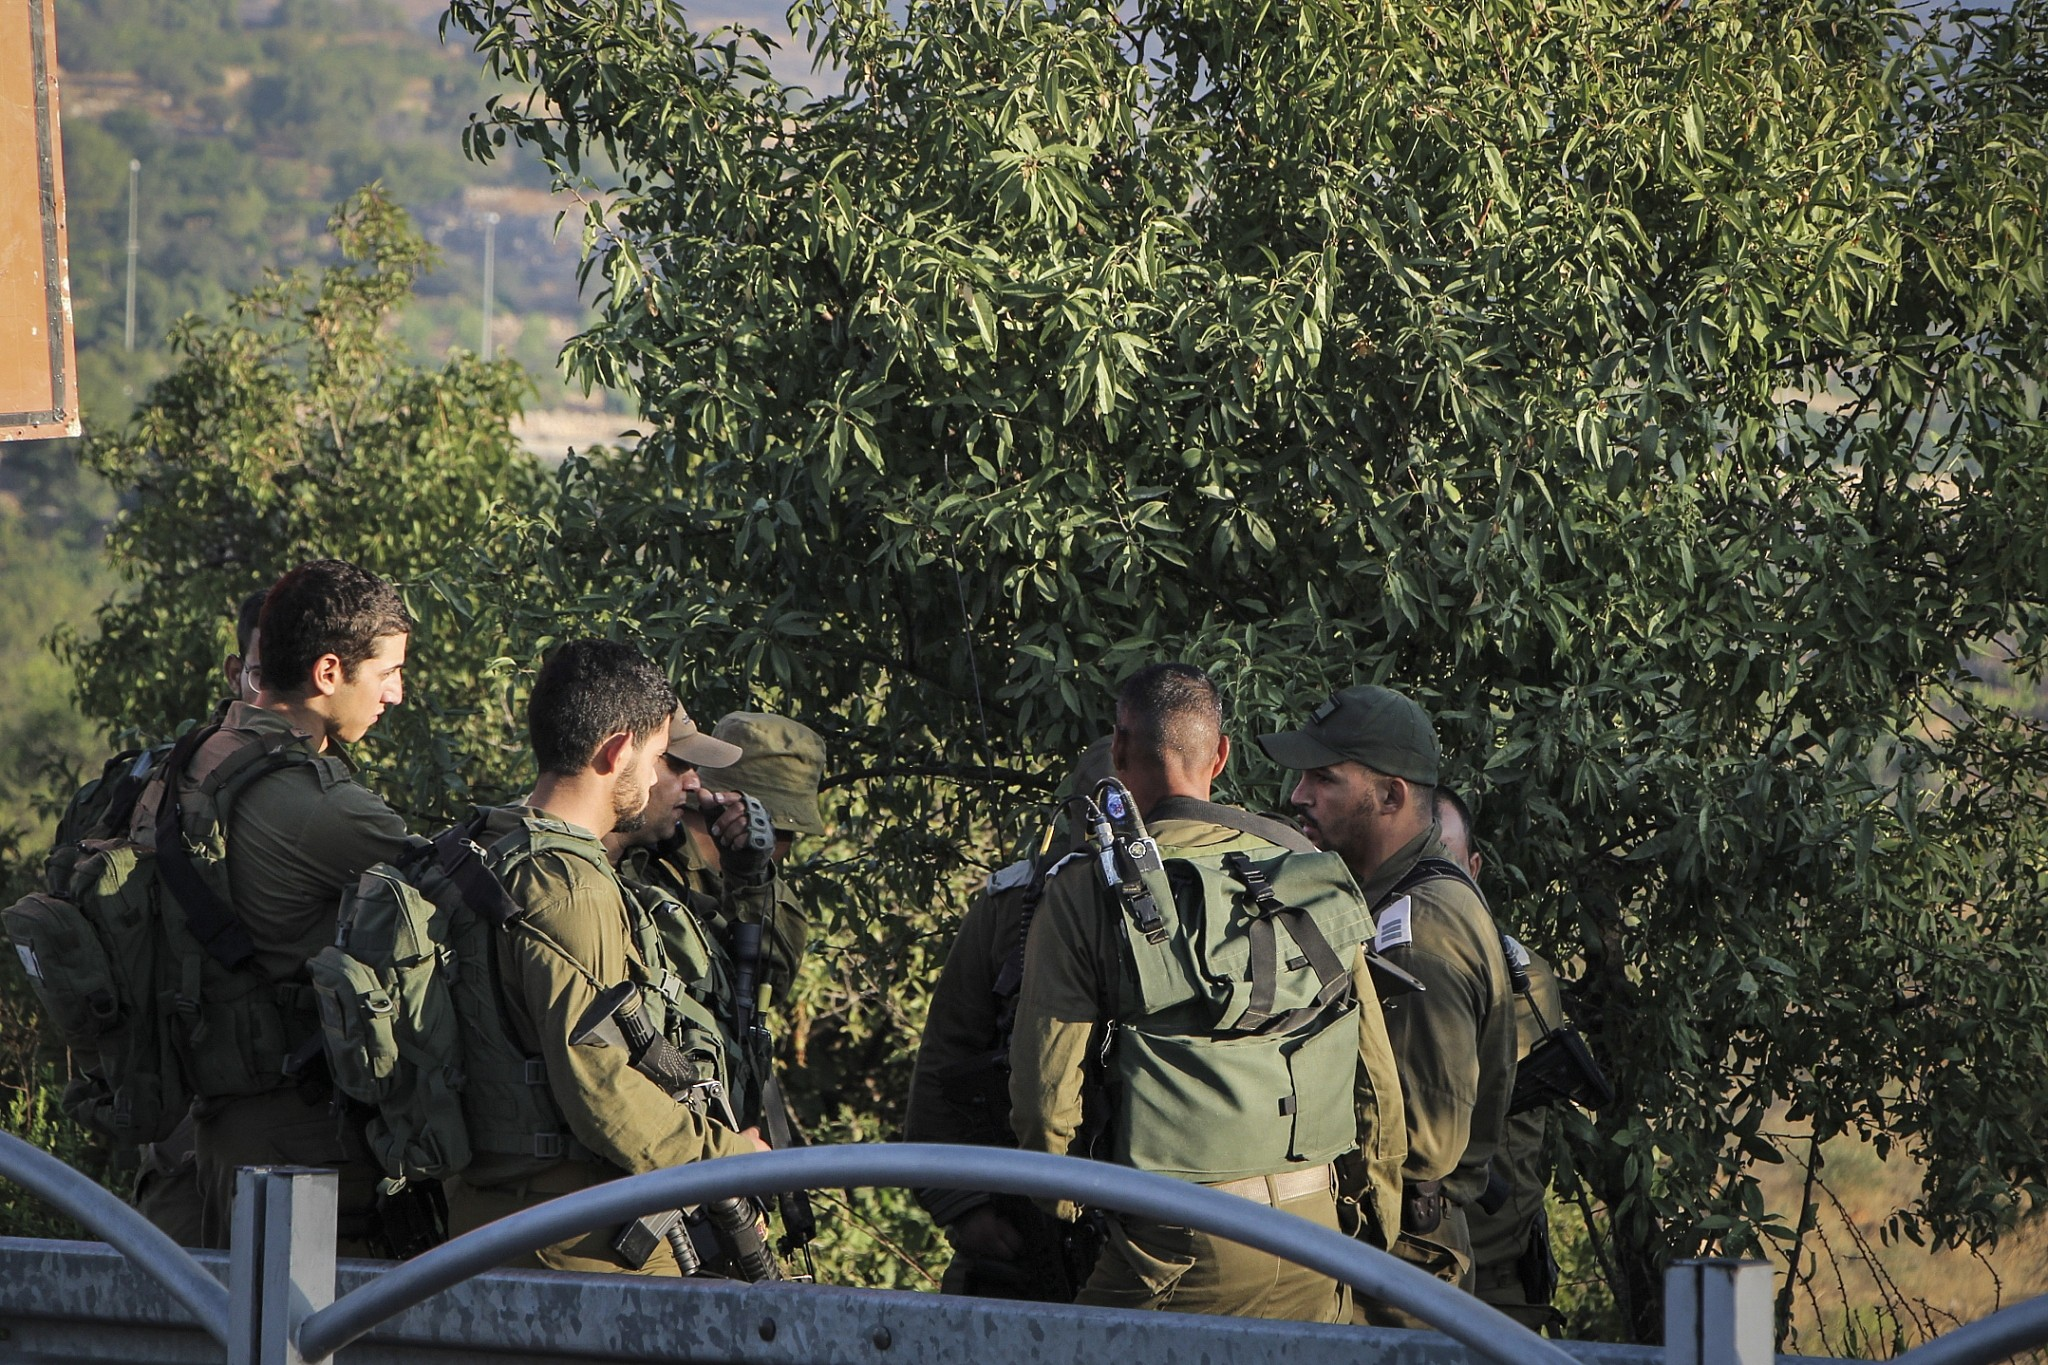 Israeli soldiers at the scene where the body of an off-duty, out-of-uniform Israeli soldier was found dead with stab wounds, near the settlement of Migdal Oz in the Etzion region, on August 8, 2019. (Gershon Elinson/Flash90)